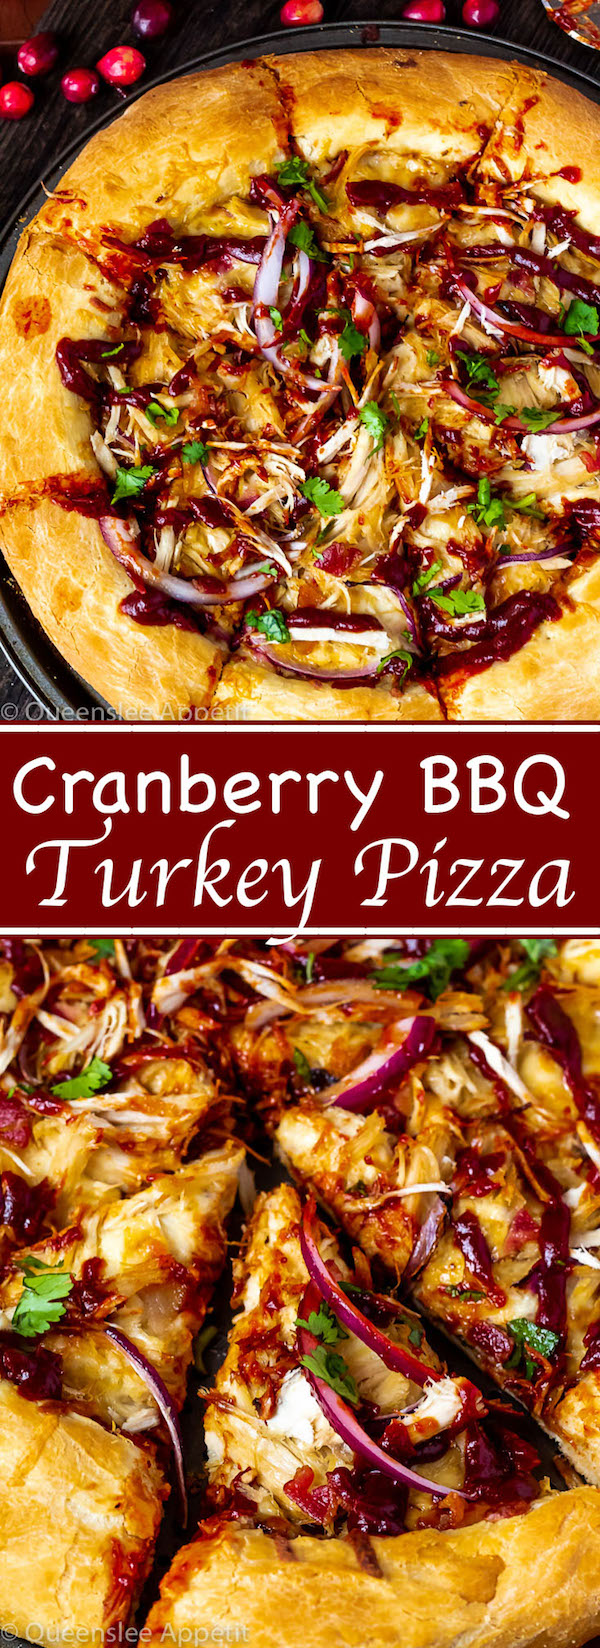 Cranberry BBQ Turkey Pizza — Thick homemade pizza crust topped with sweet homemade cranberry bbq sauce, roasted turkey, red onions, bacon, cilantro and two different cheeses! This is the perfect use for all that leftover Thanksgiving turkey!